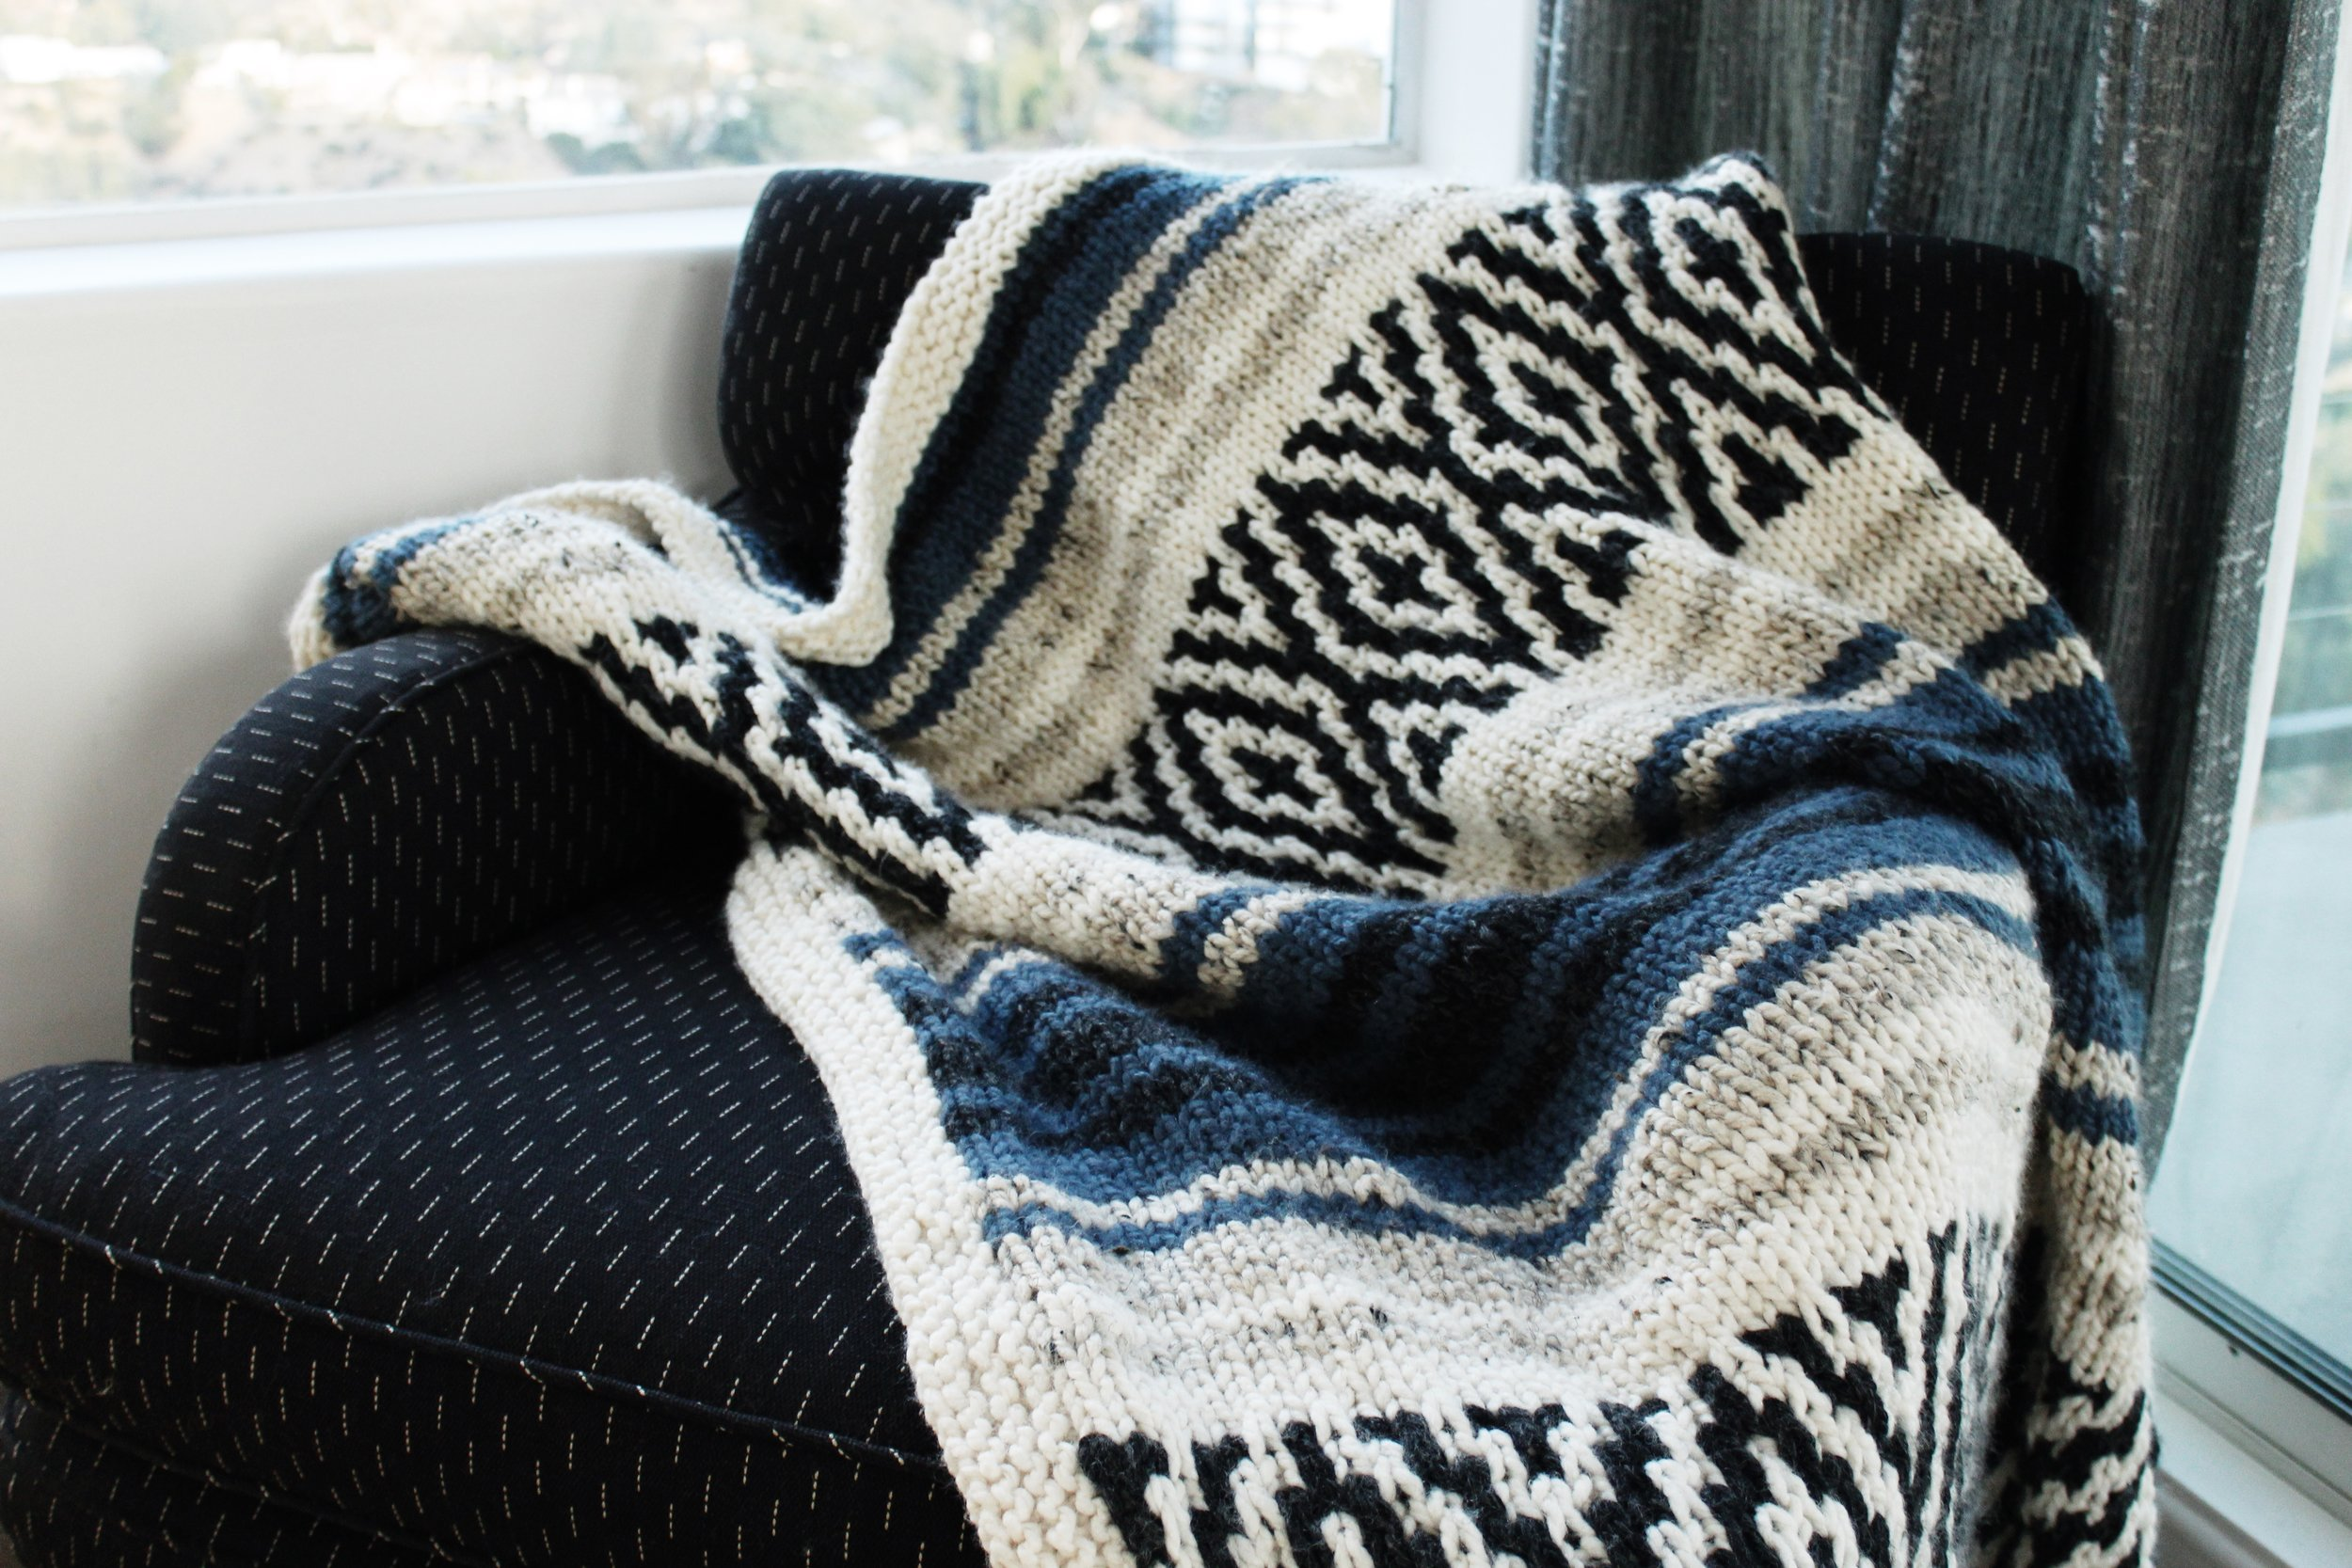 Mexican Blanket pattern by Two of Wands